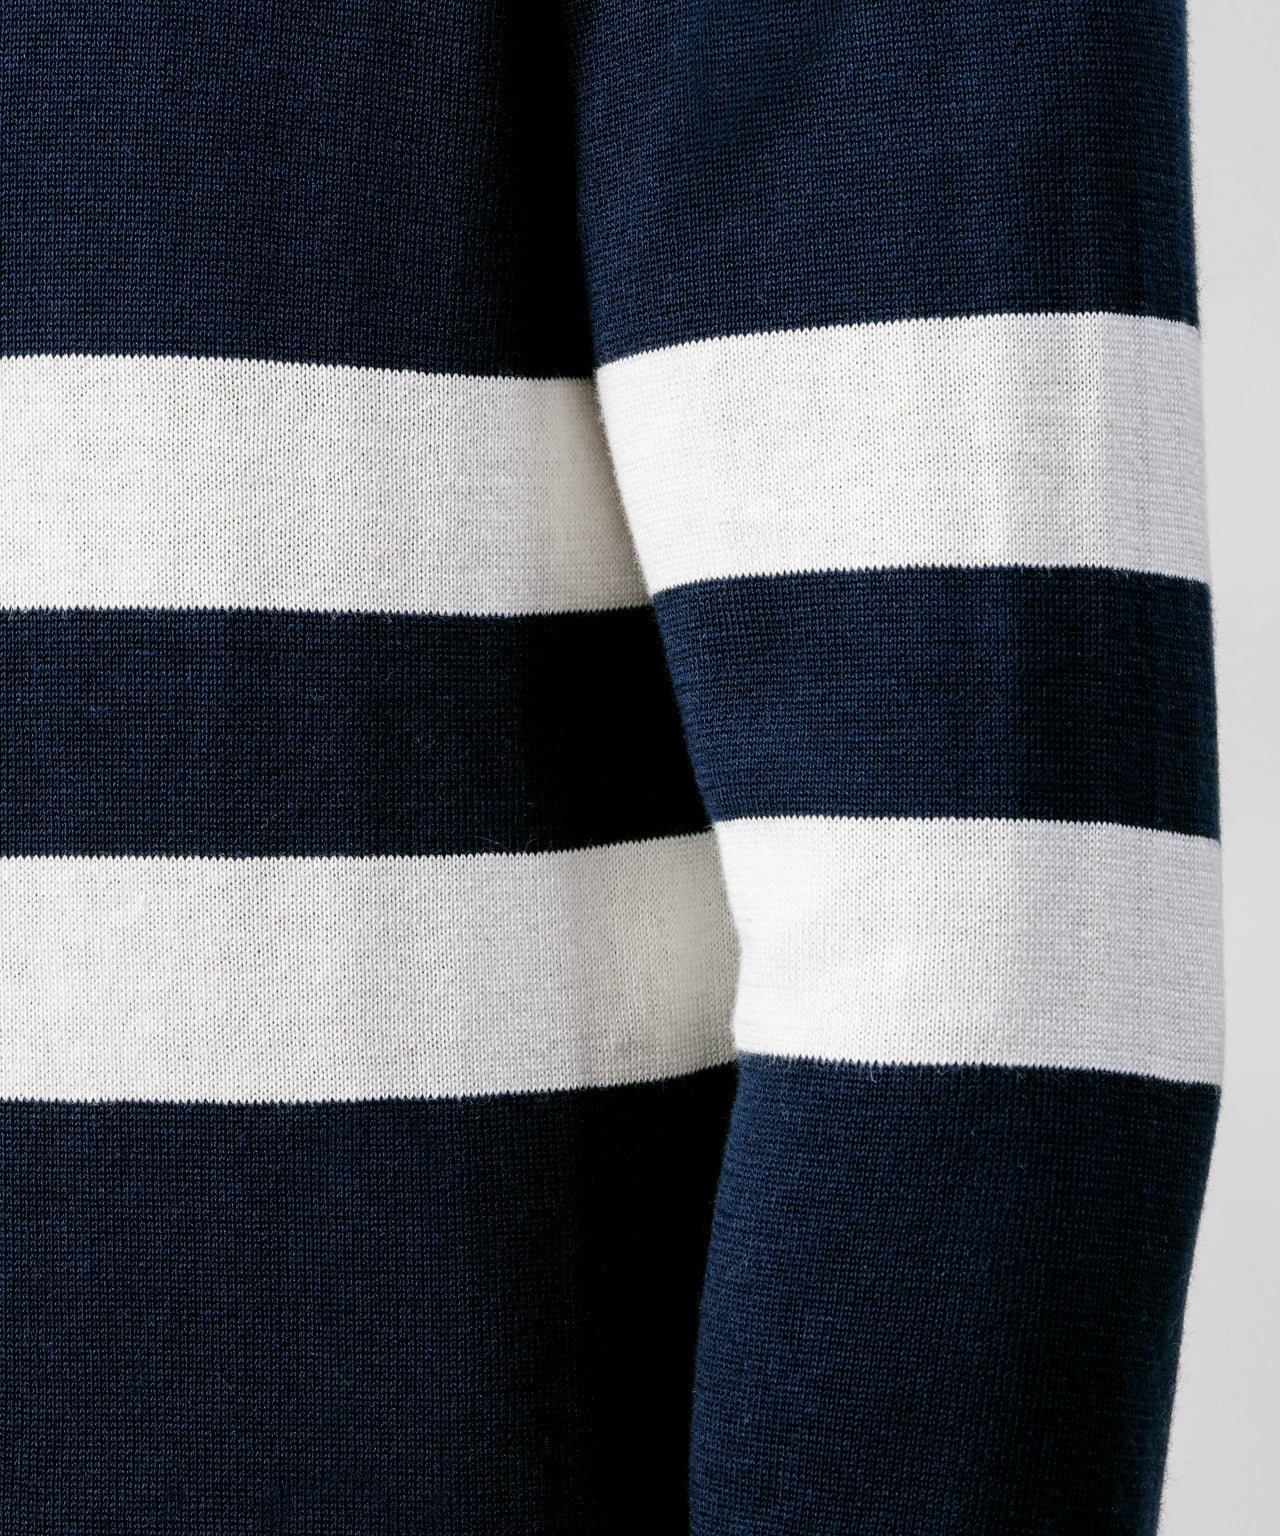 Cotton Cashmere Sweatshirt - navy / white